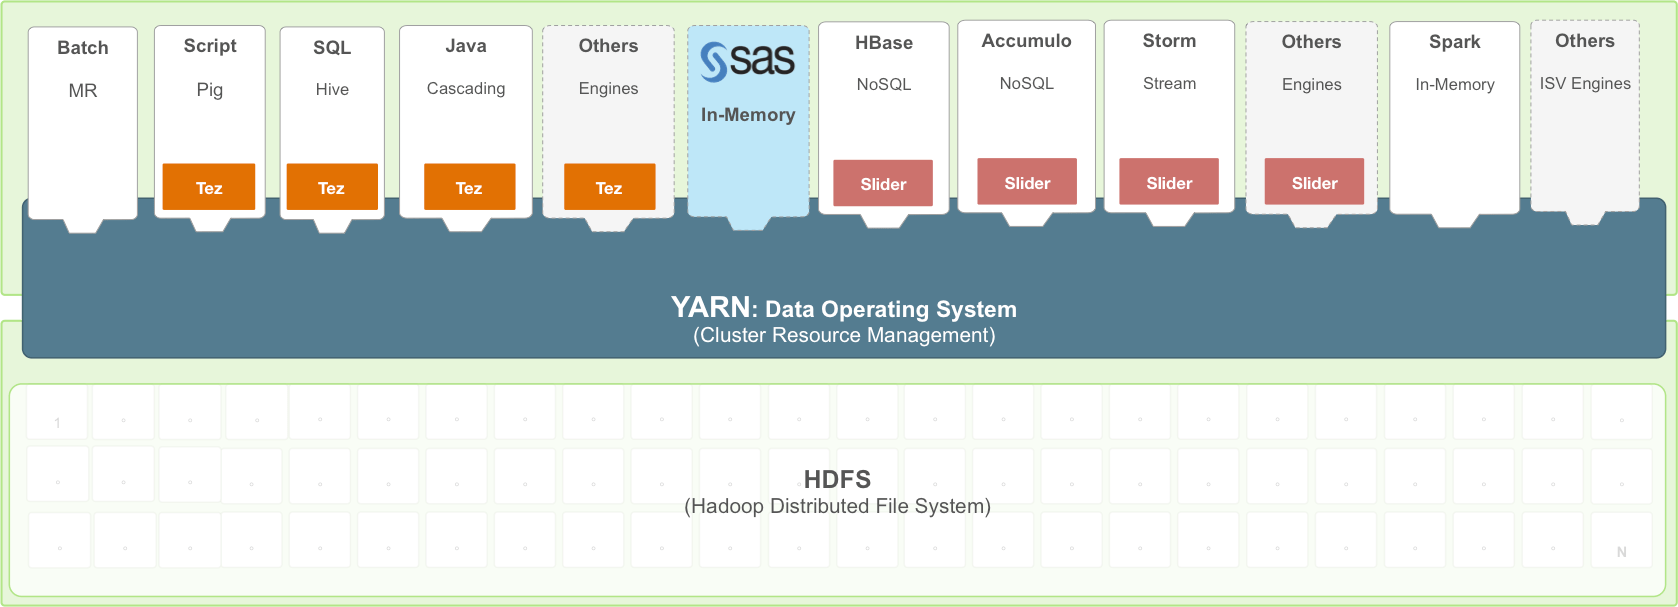 hight resolution of architecture diagram on how sas works with hadoop yarn